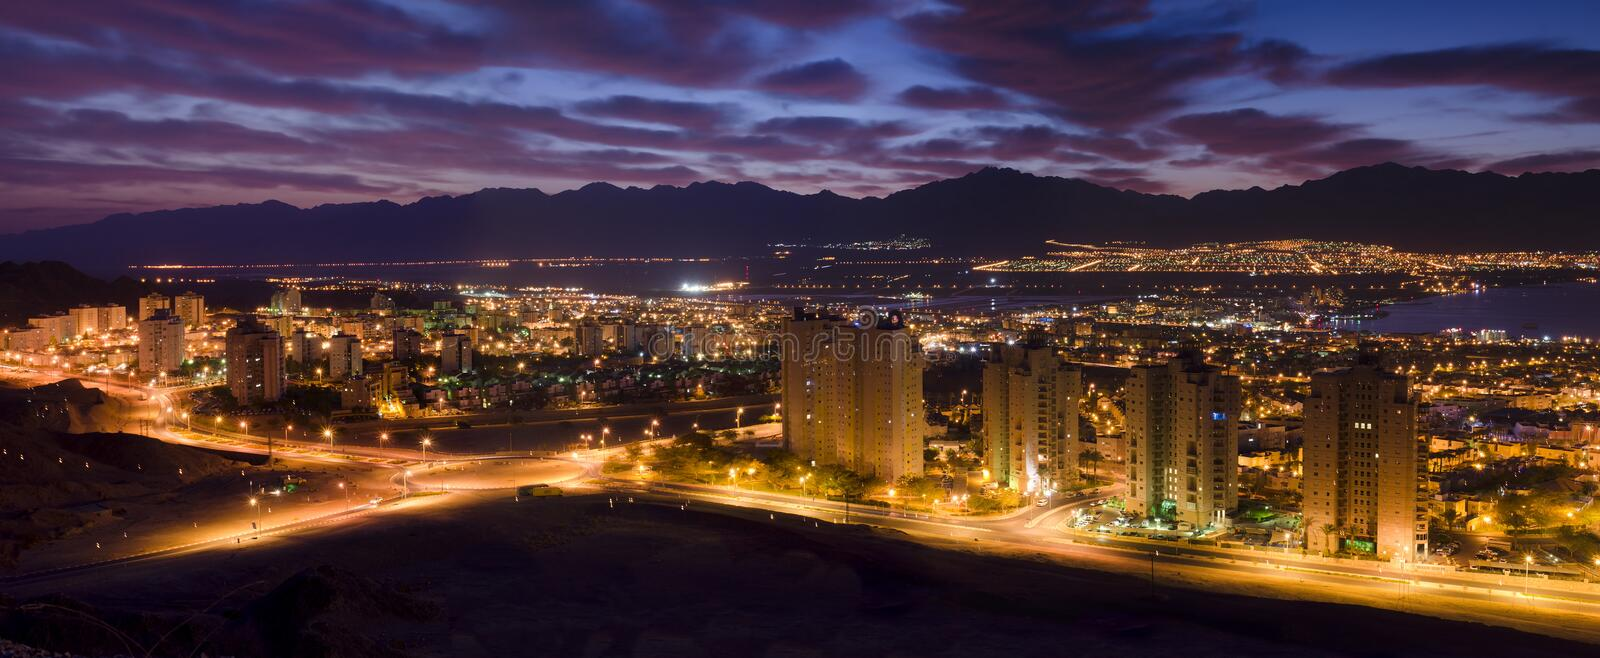 Night view on Eilat city, Israel royalty free stock images